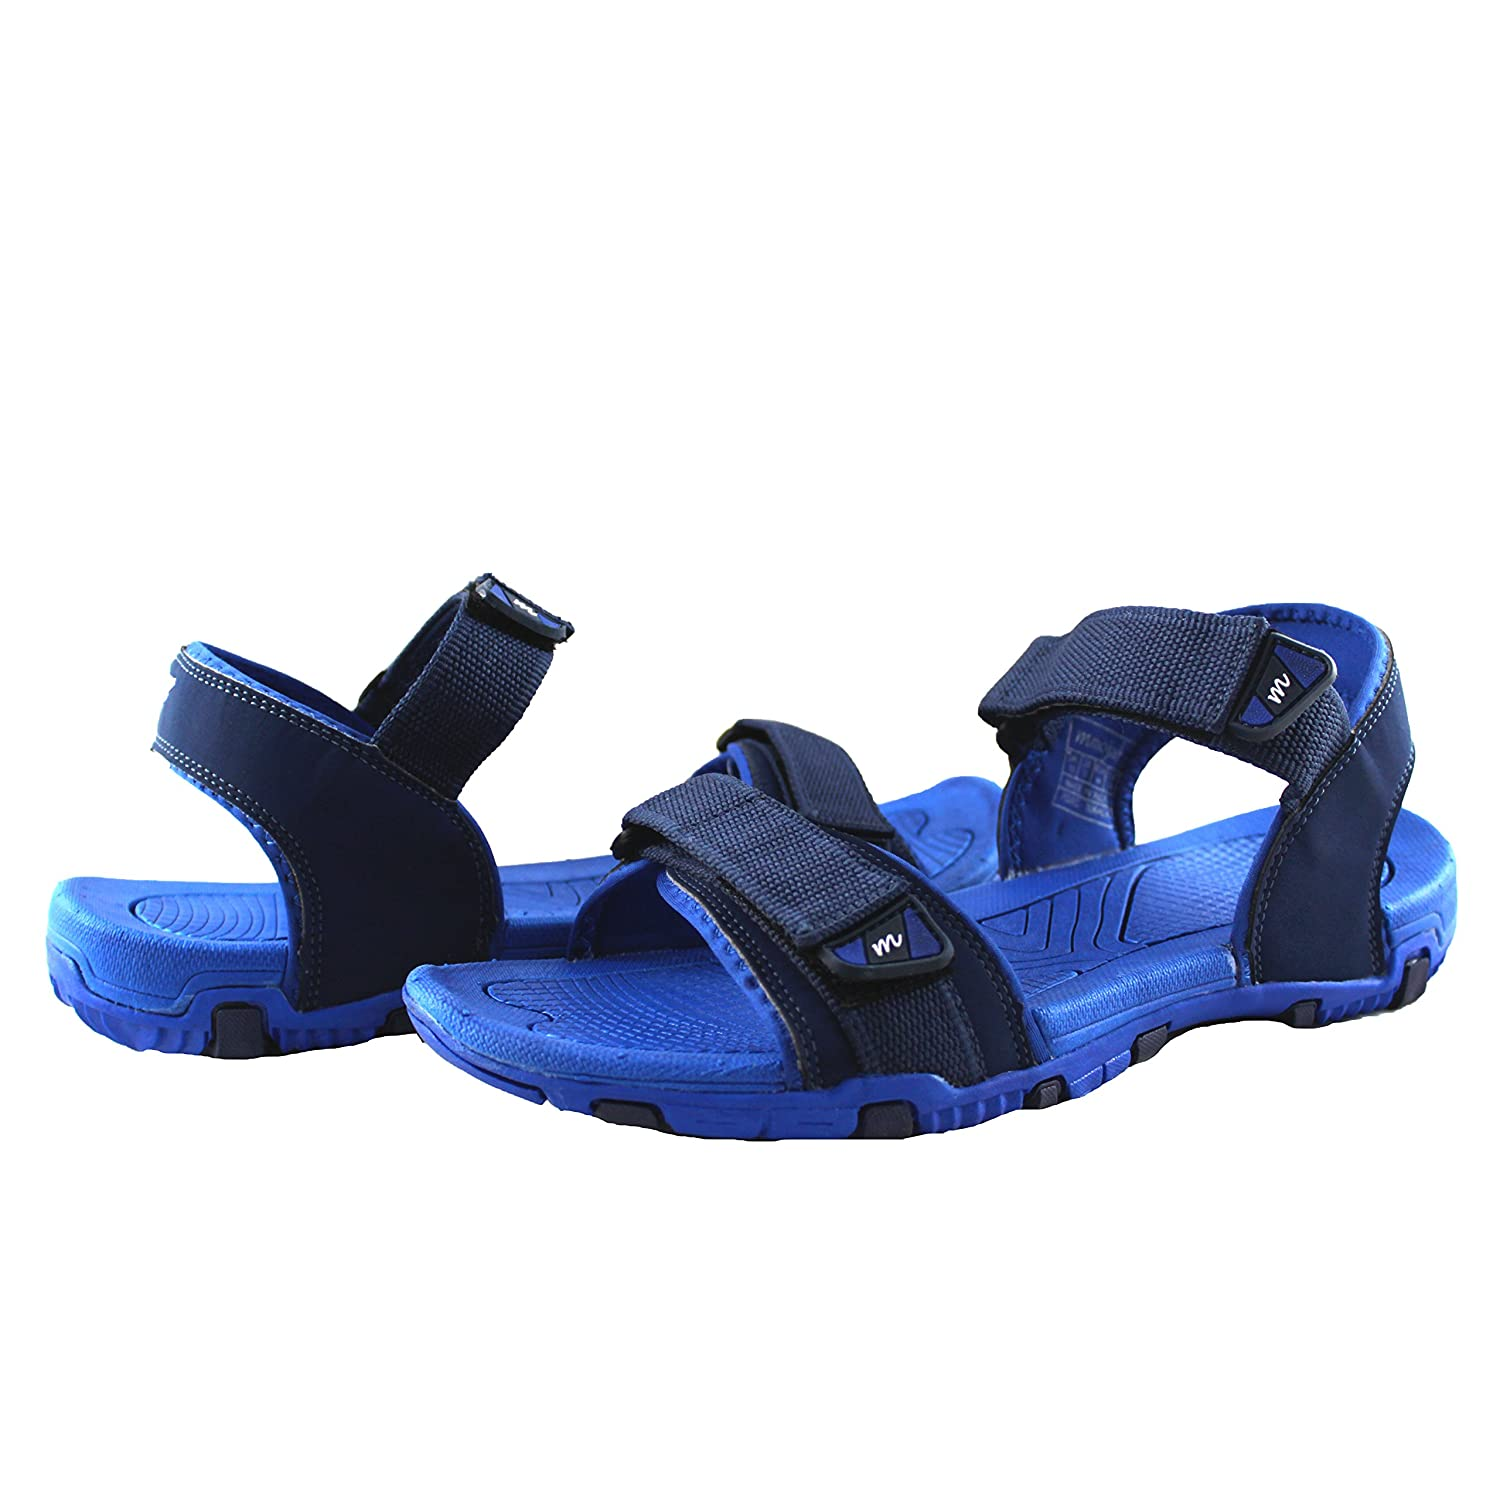 Mmojah Mens Strider Navy/Royalblue Sandal -8